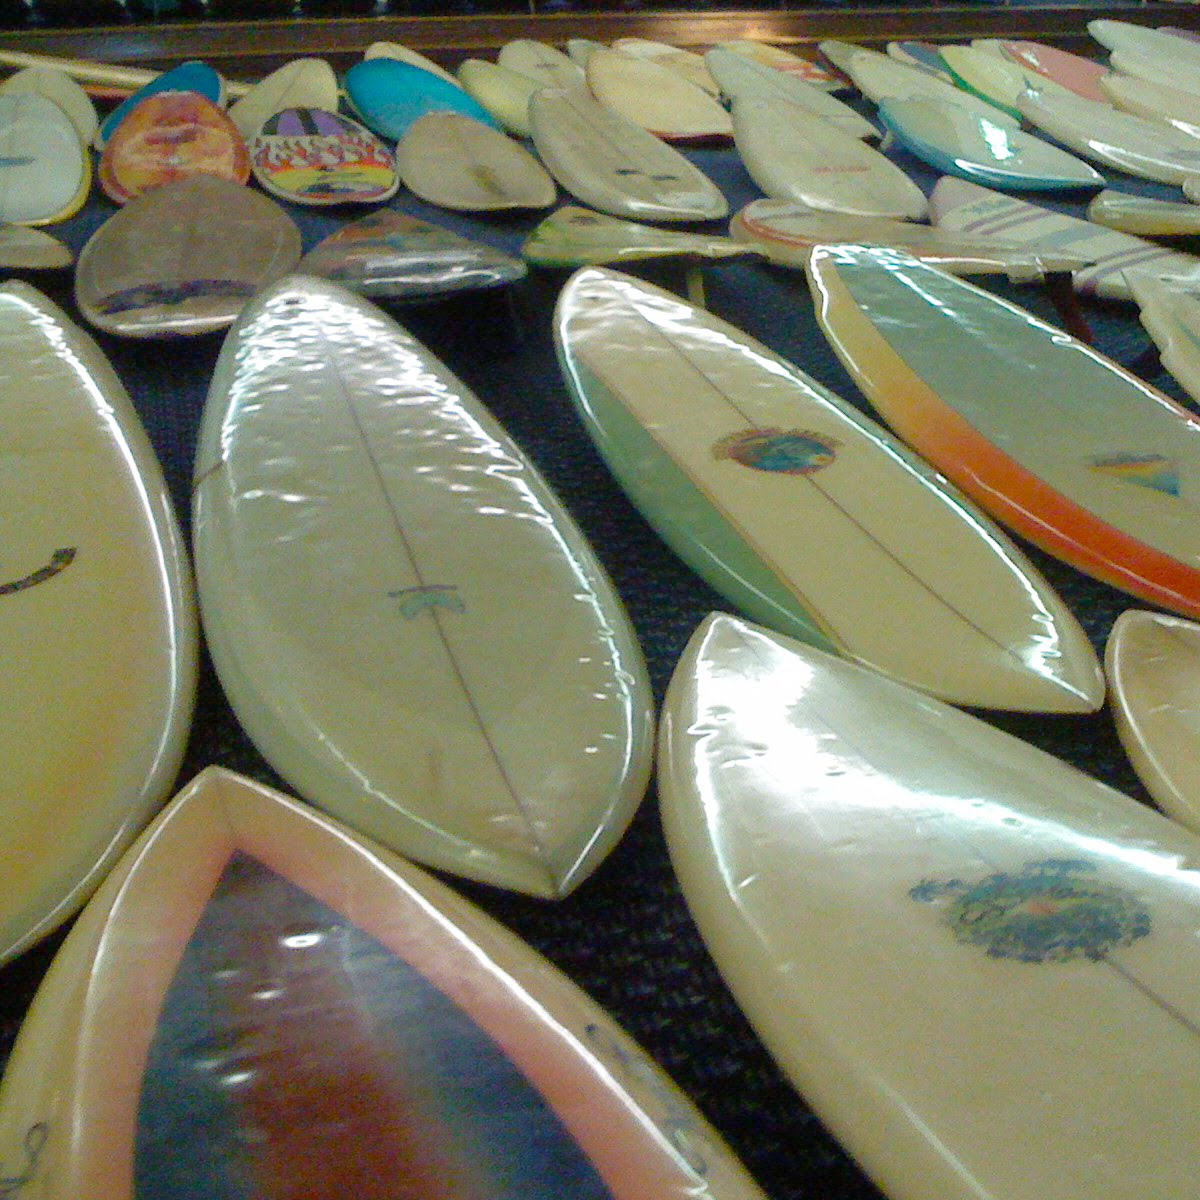 Board Collector Mick Mock S Surf Auction Of Vintage Surfboards